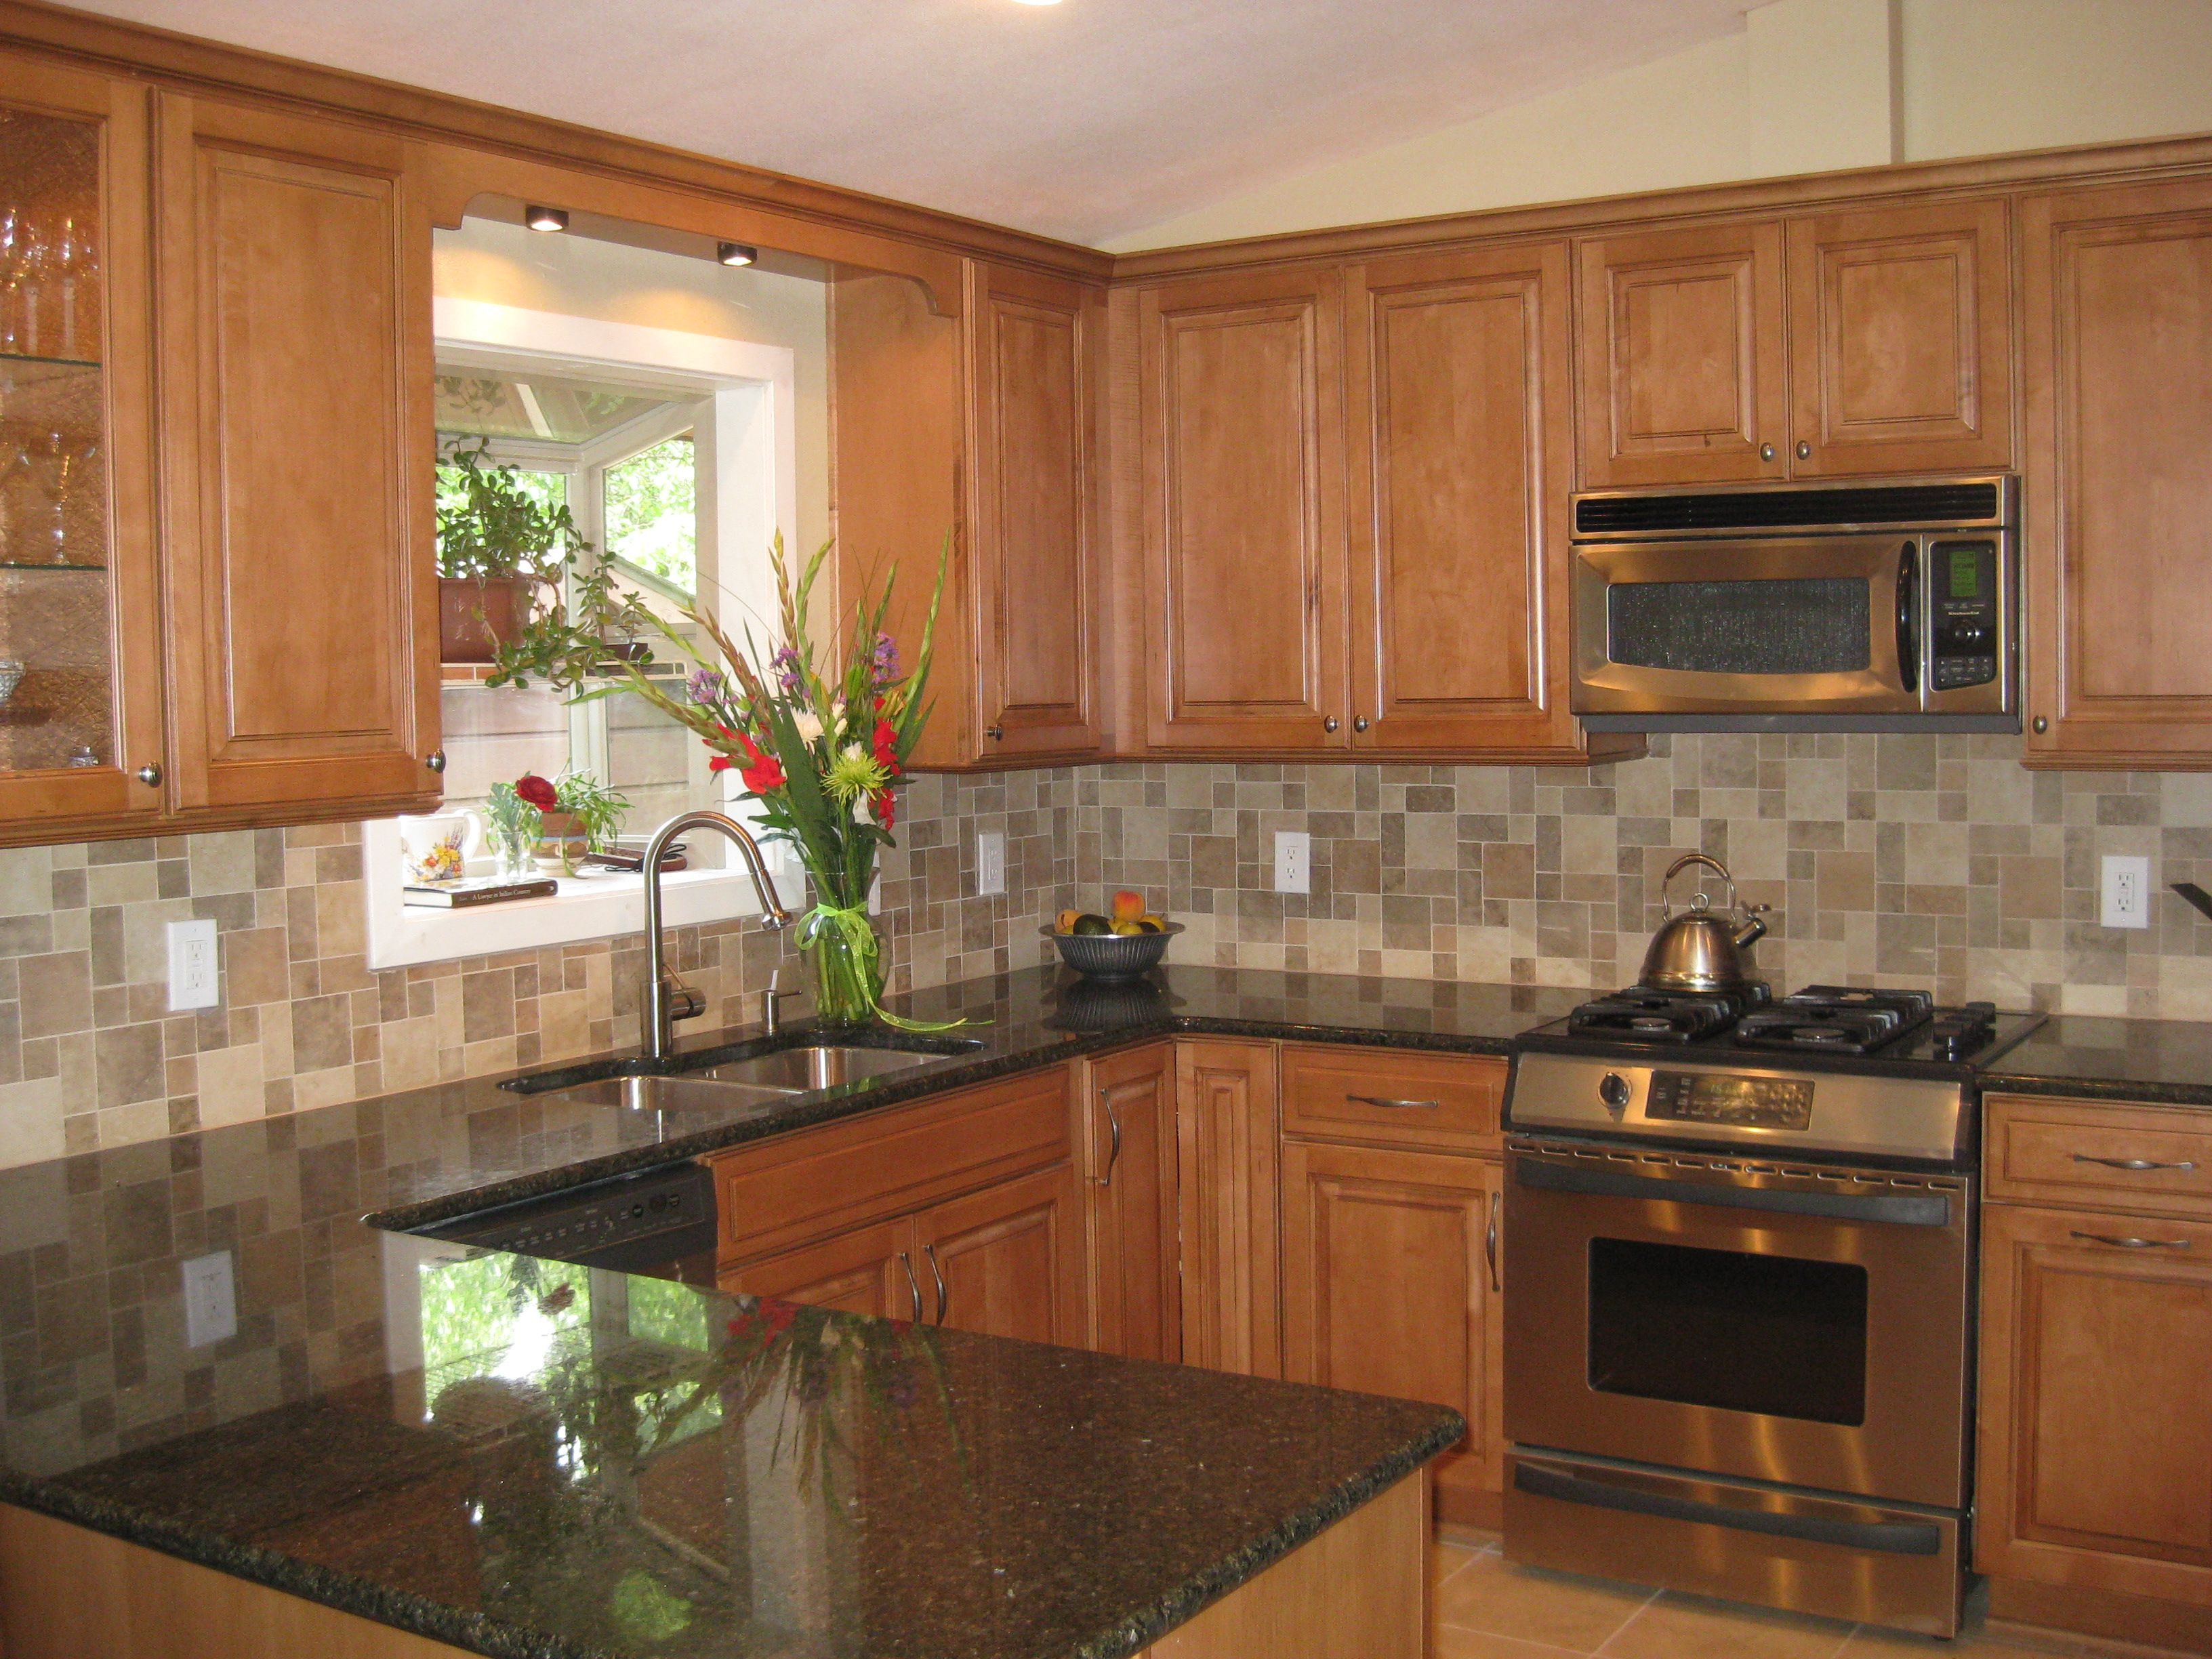 Pictures of kitchen cabinets and granite countertops - Light Maple Kitchen Cabinets With Granite Countertops